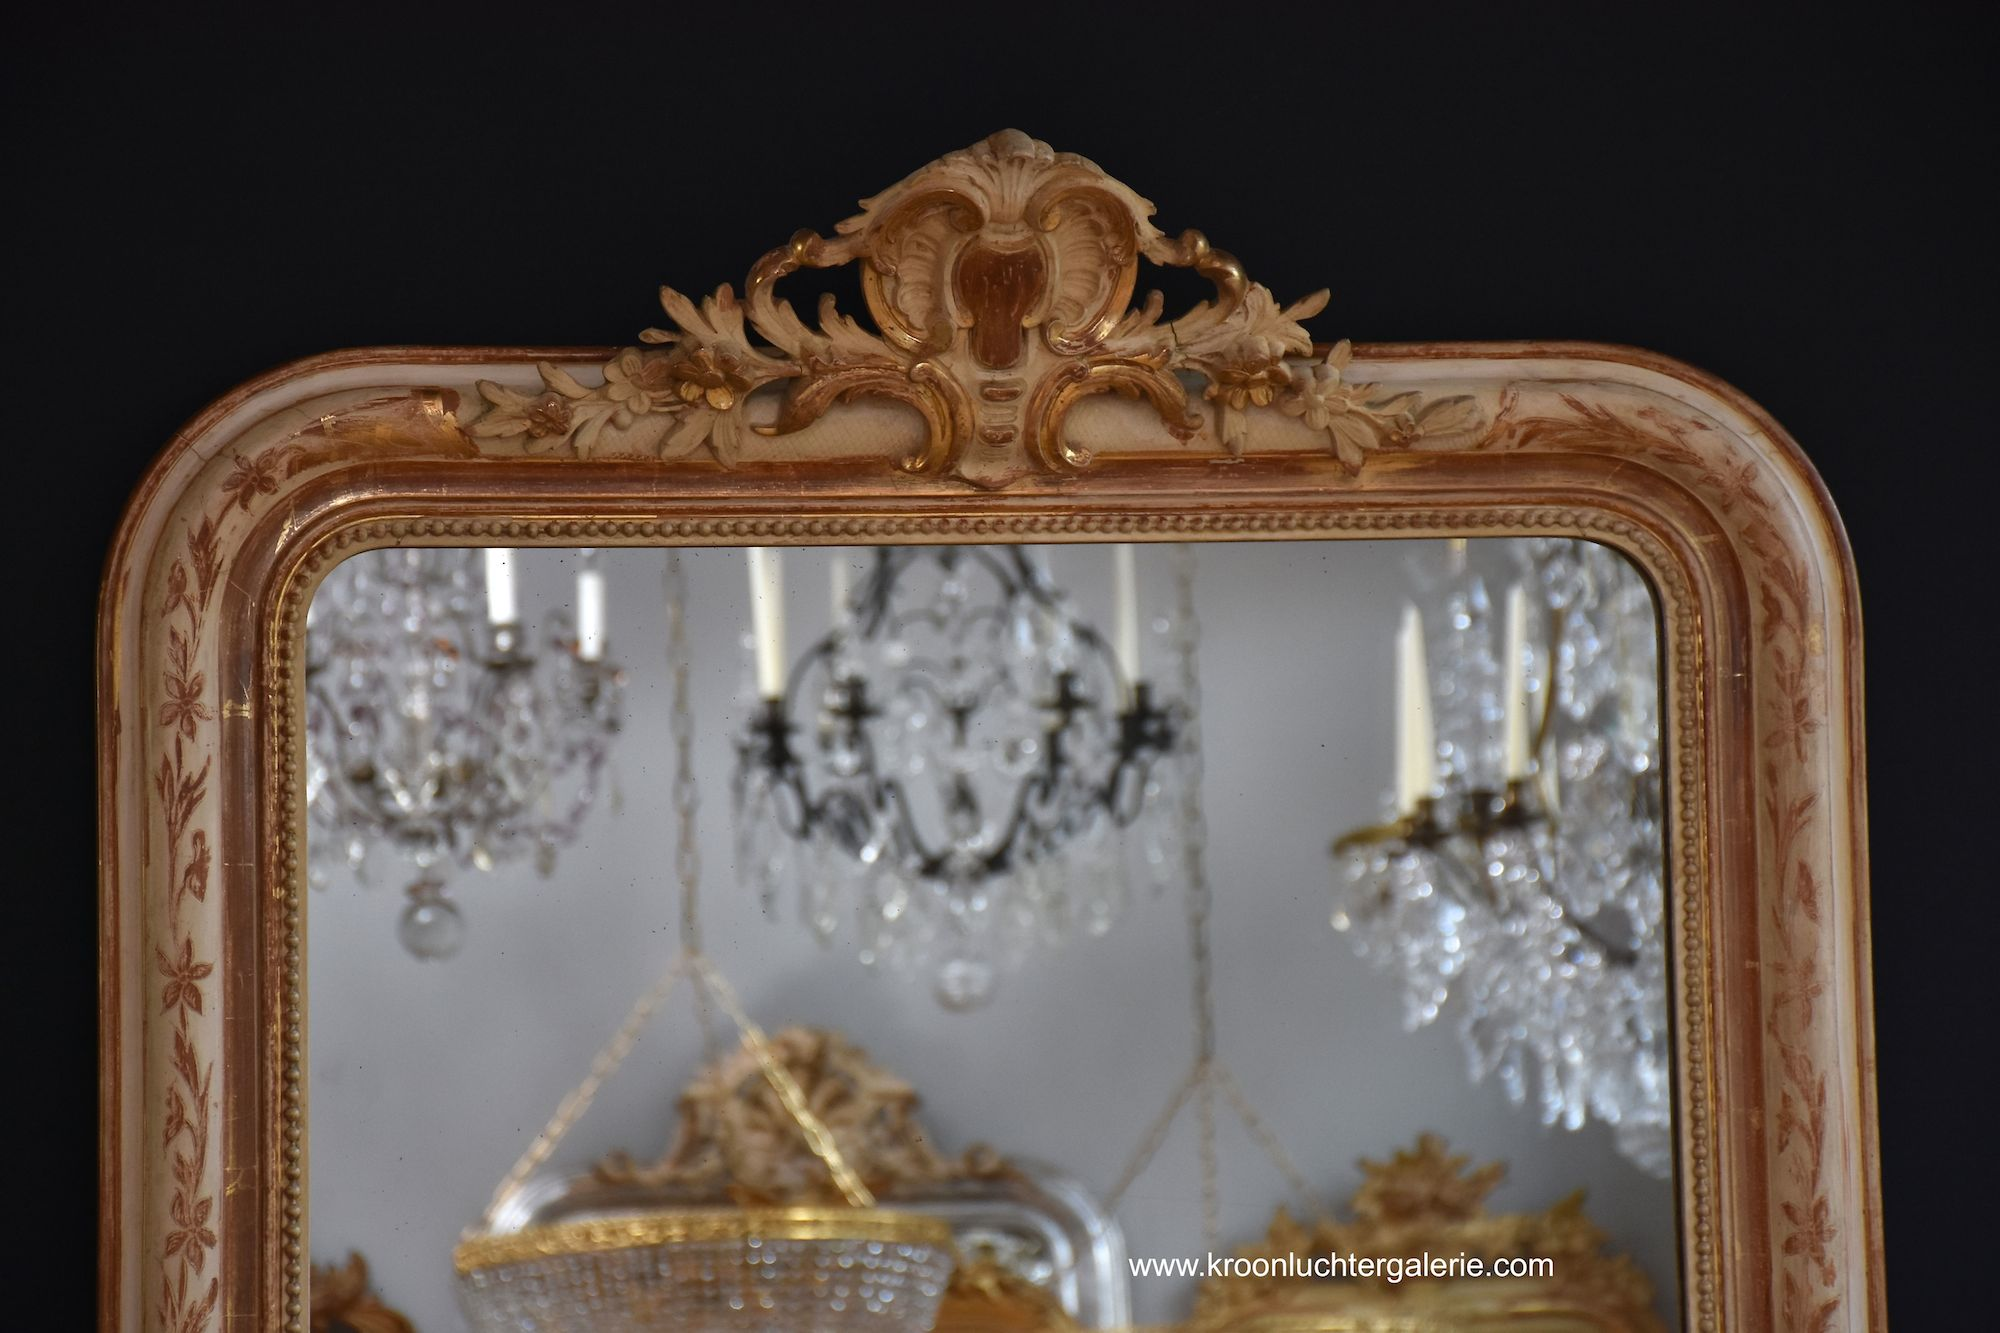 19th century French mirror with a crown